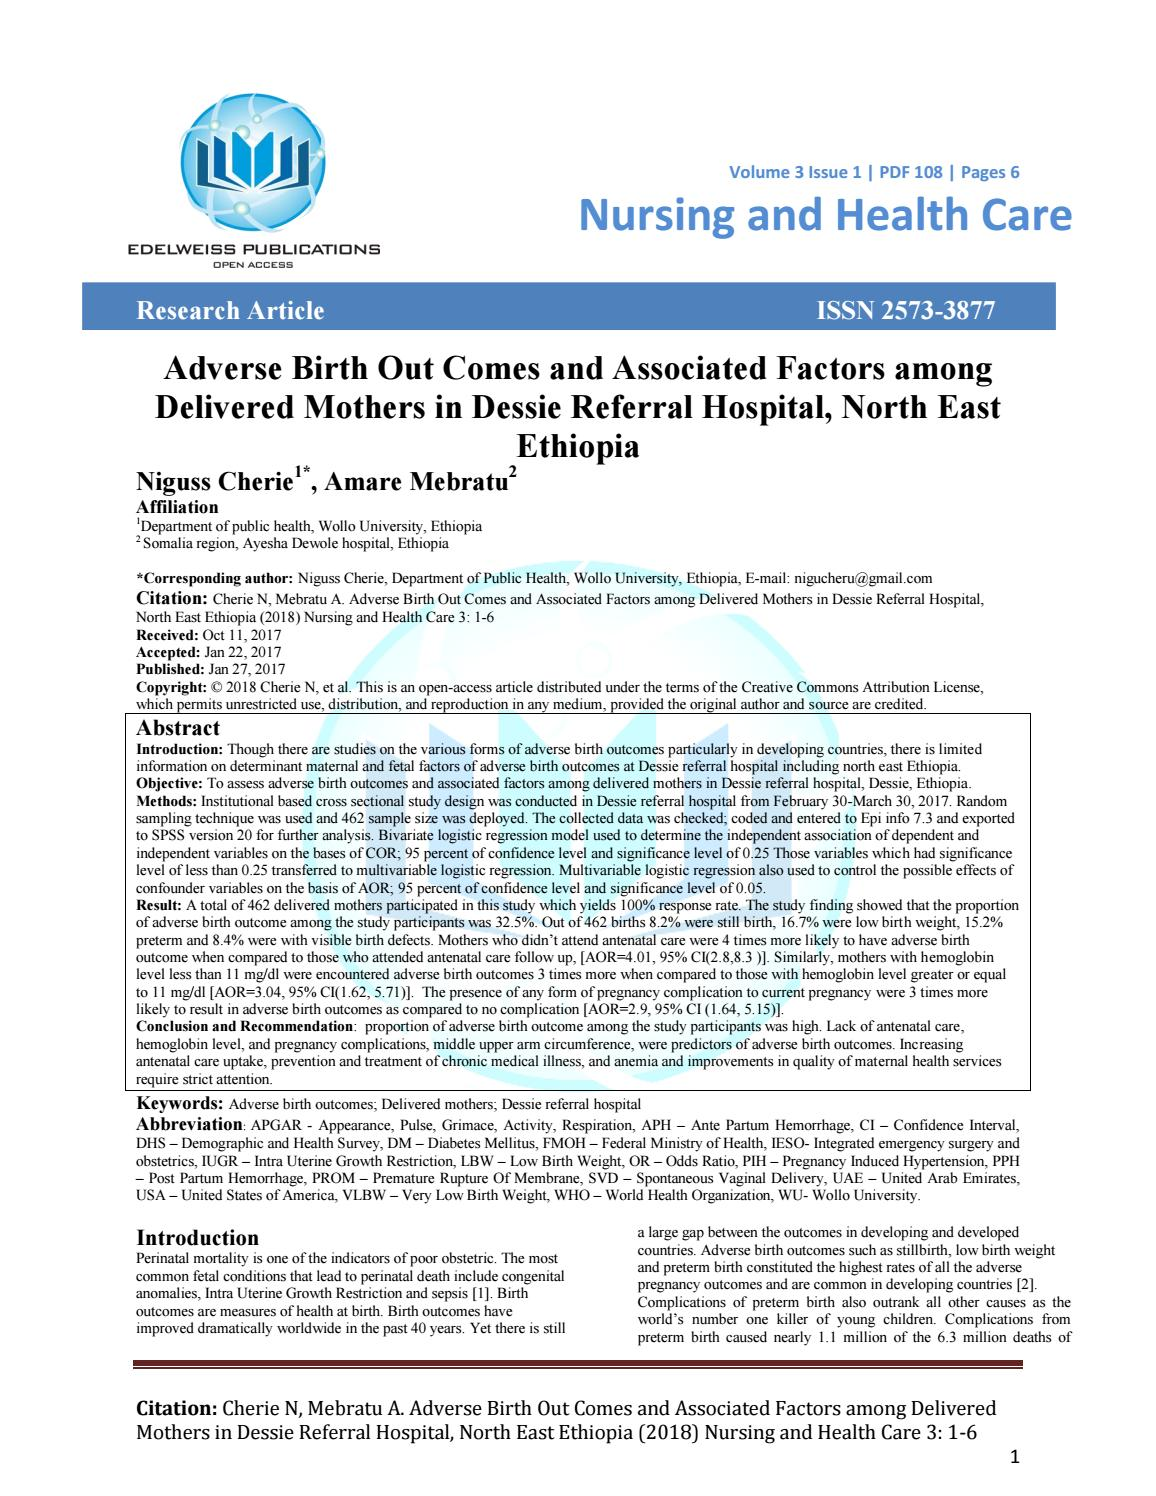 Adverse Birth Out Comes and Associated Factors among